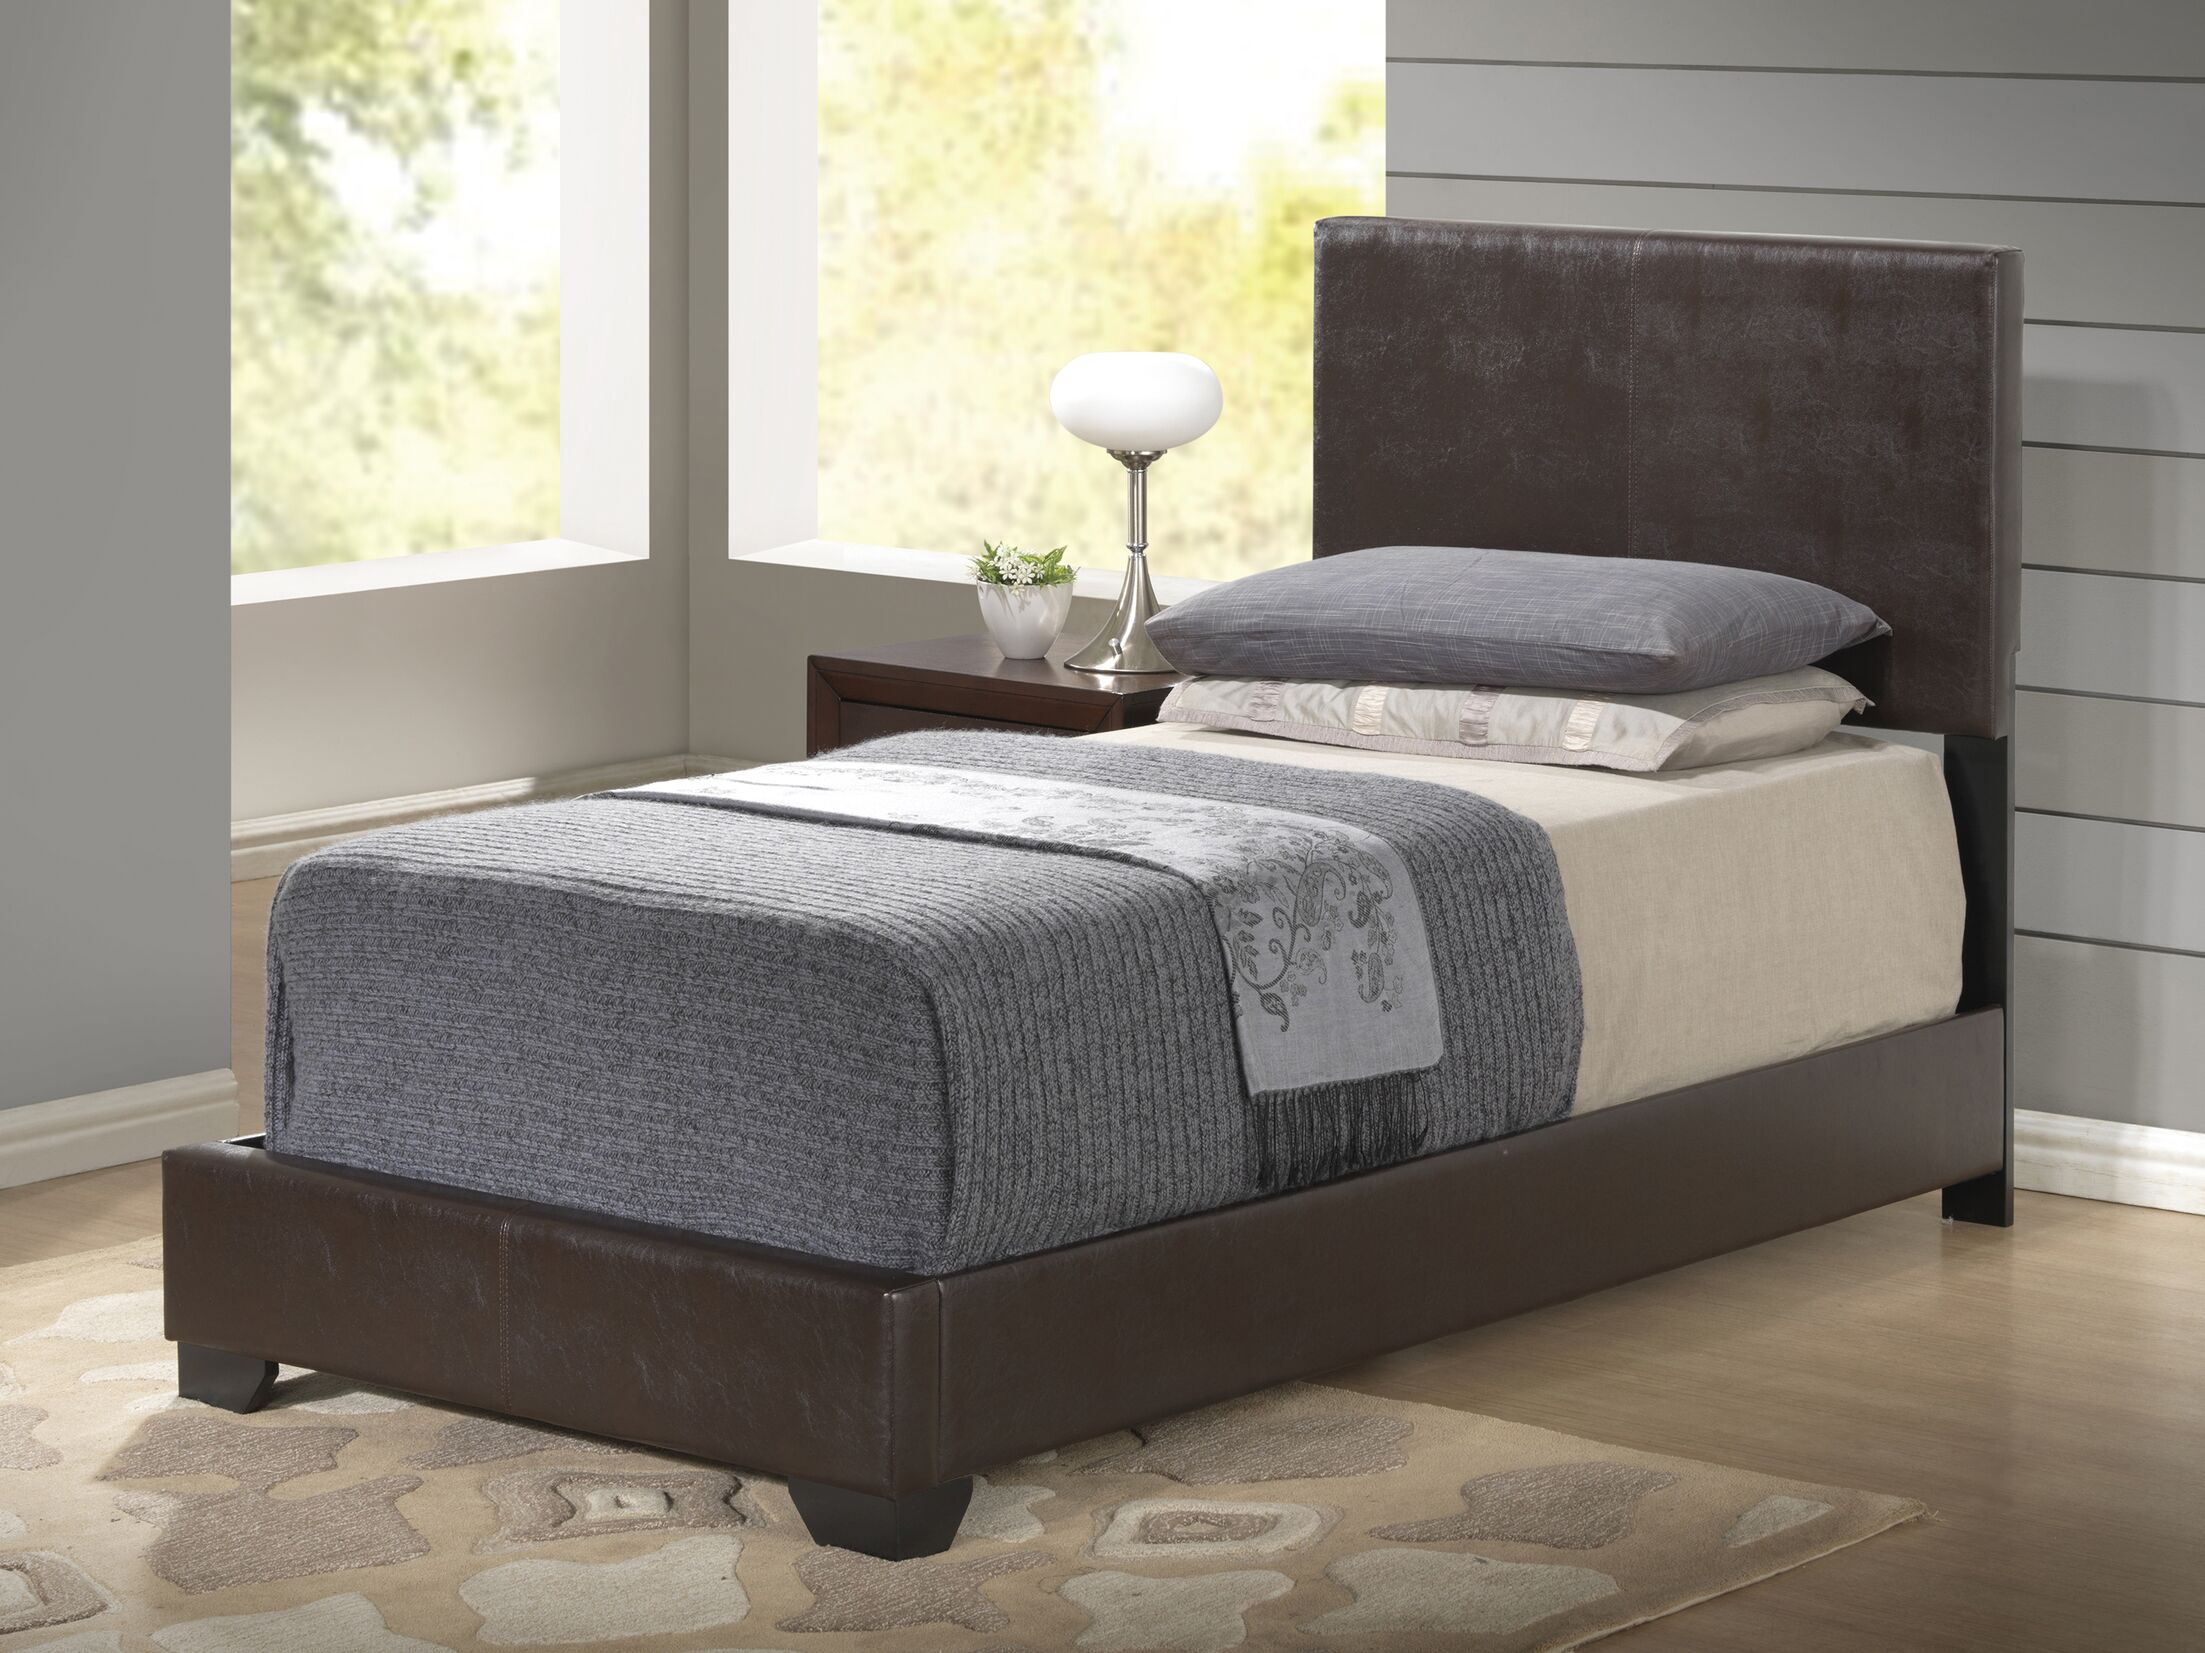 Upholstered Platform Bed Color: Brown, Size: Full